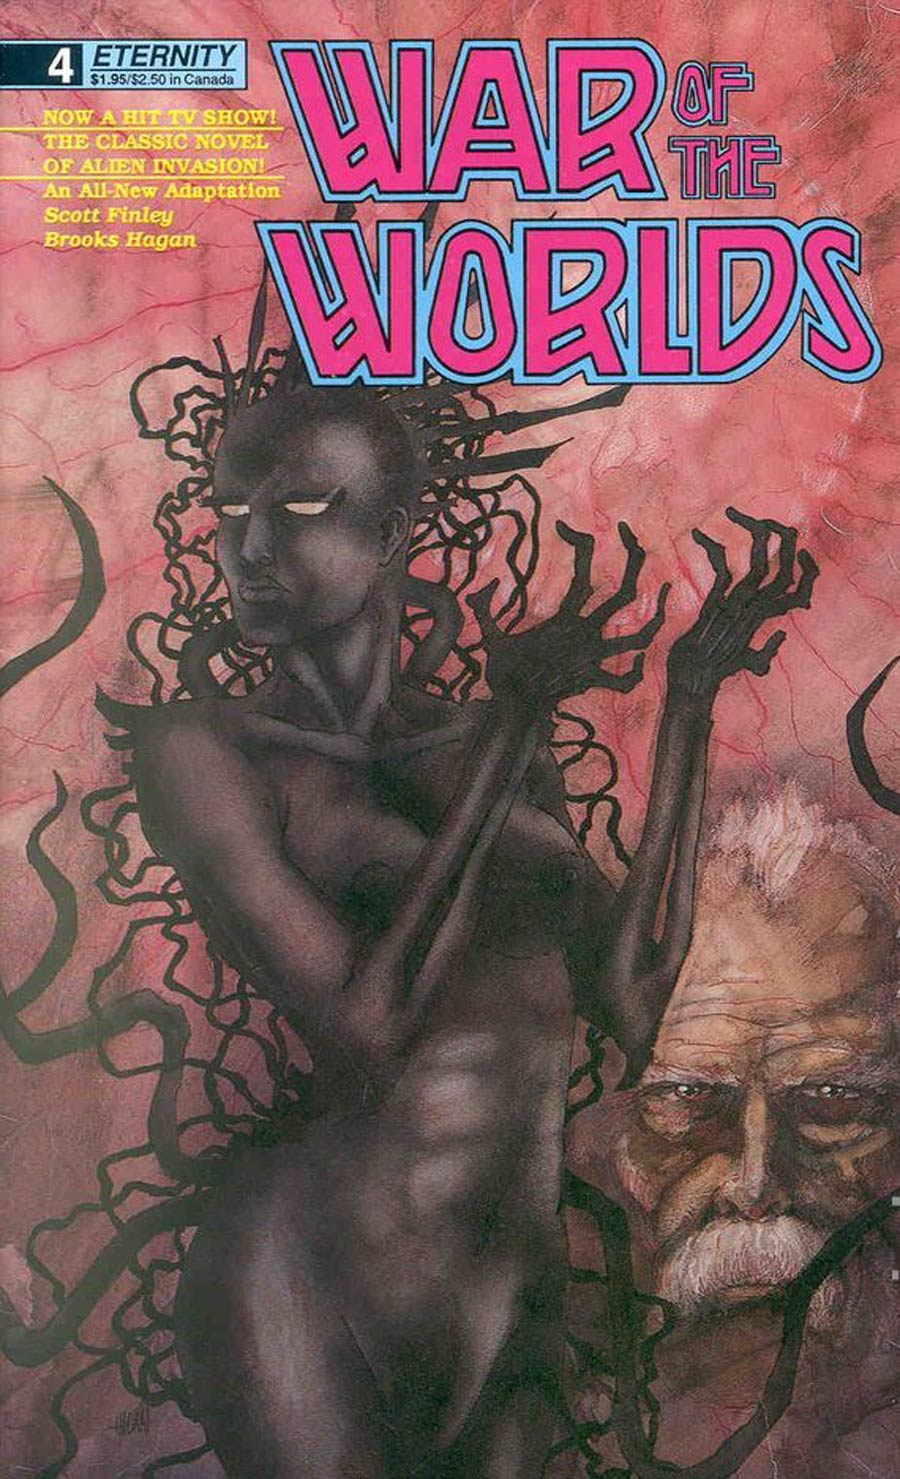 War Of The Worlds (Eternity) #4